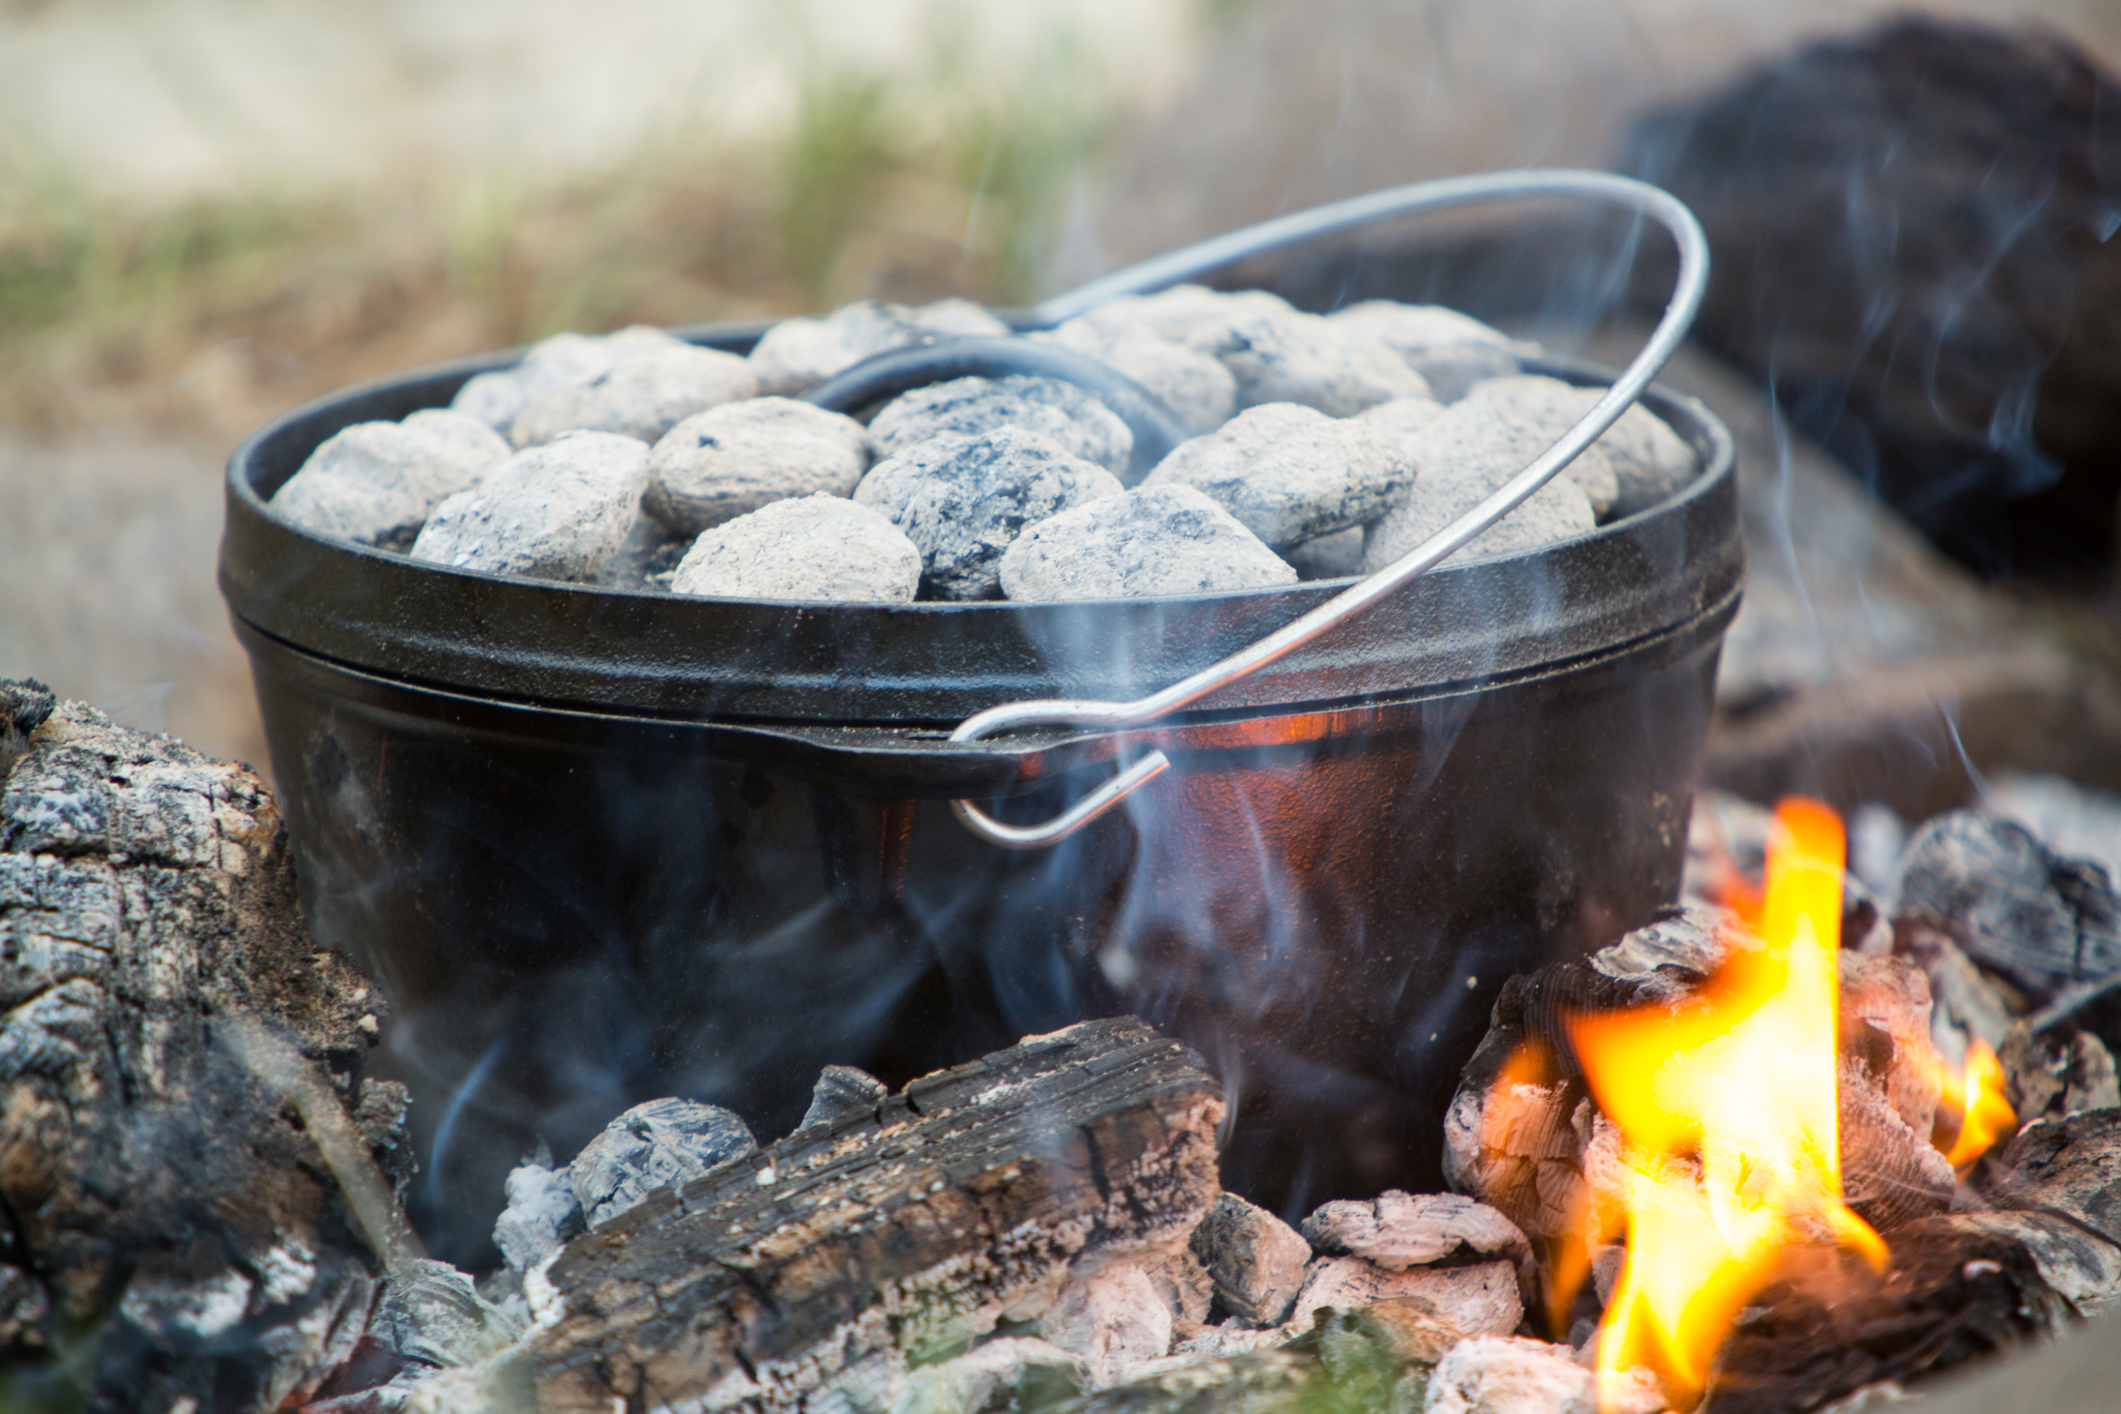 Cooking Without Power: An Introduction to Dutch Ovens